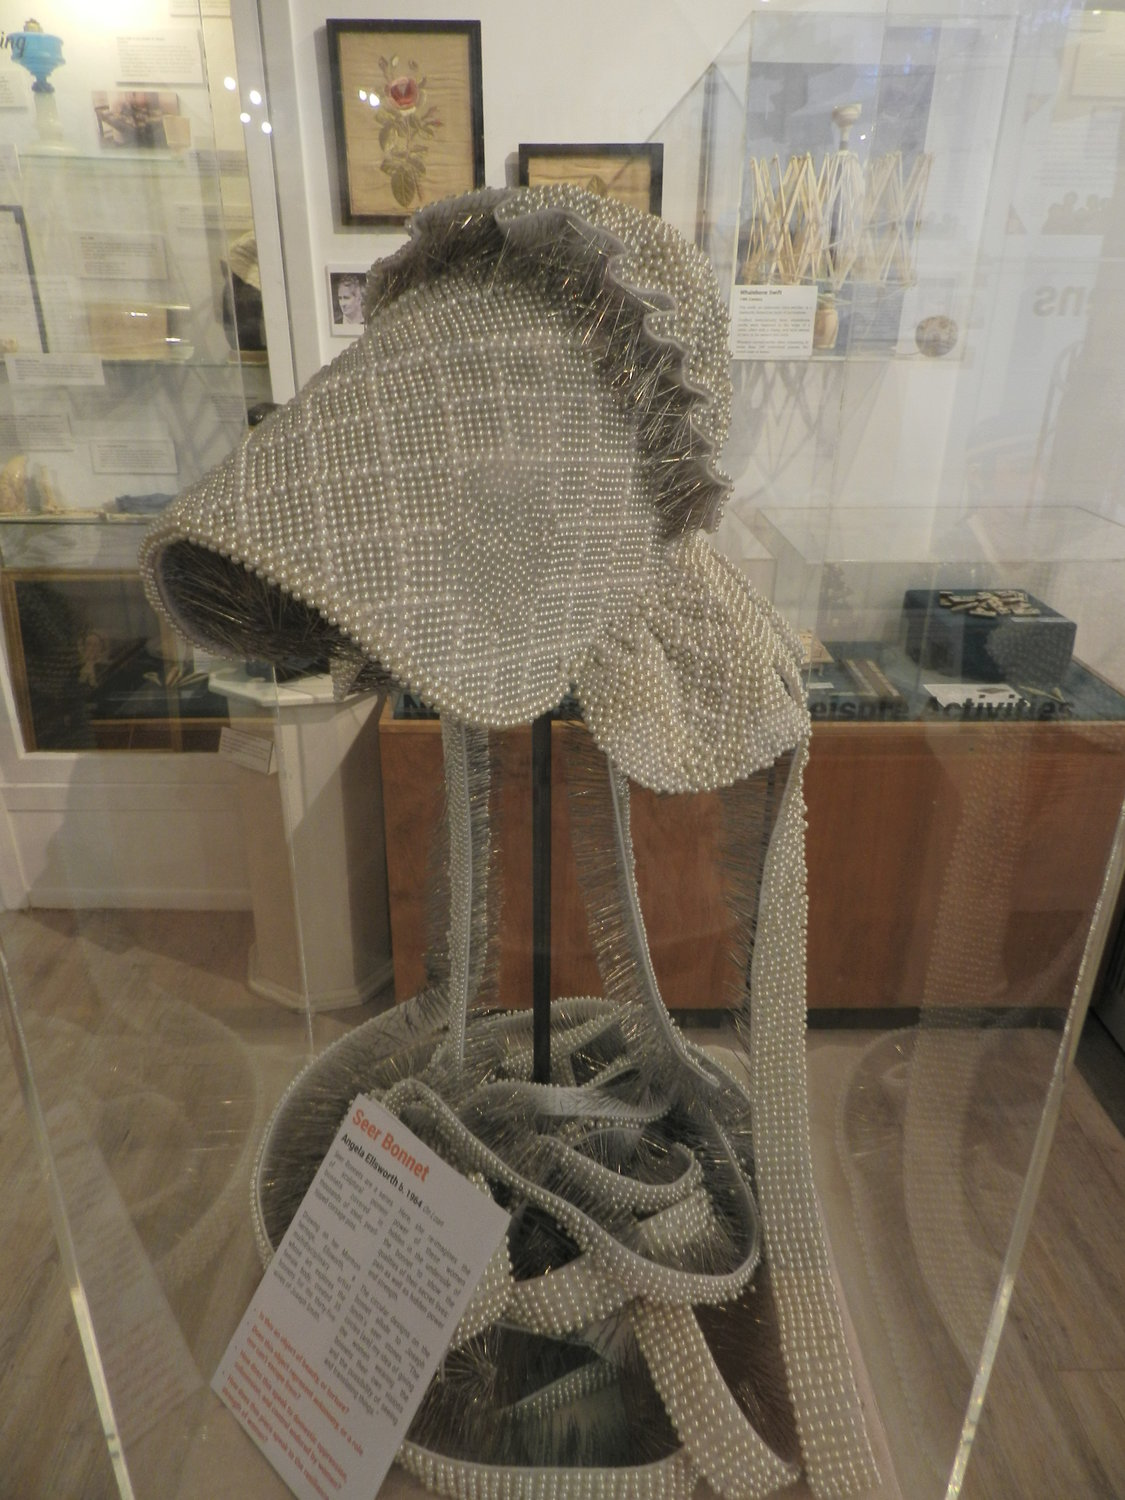 A seer bonnet on loan from a museum in Arizona demonstrates the qualities of whaling wives: pain as well as hidden power and strength.